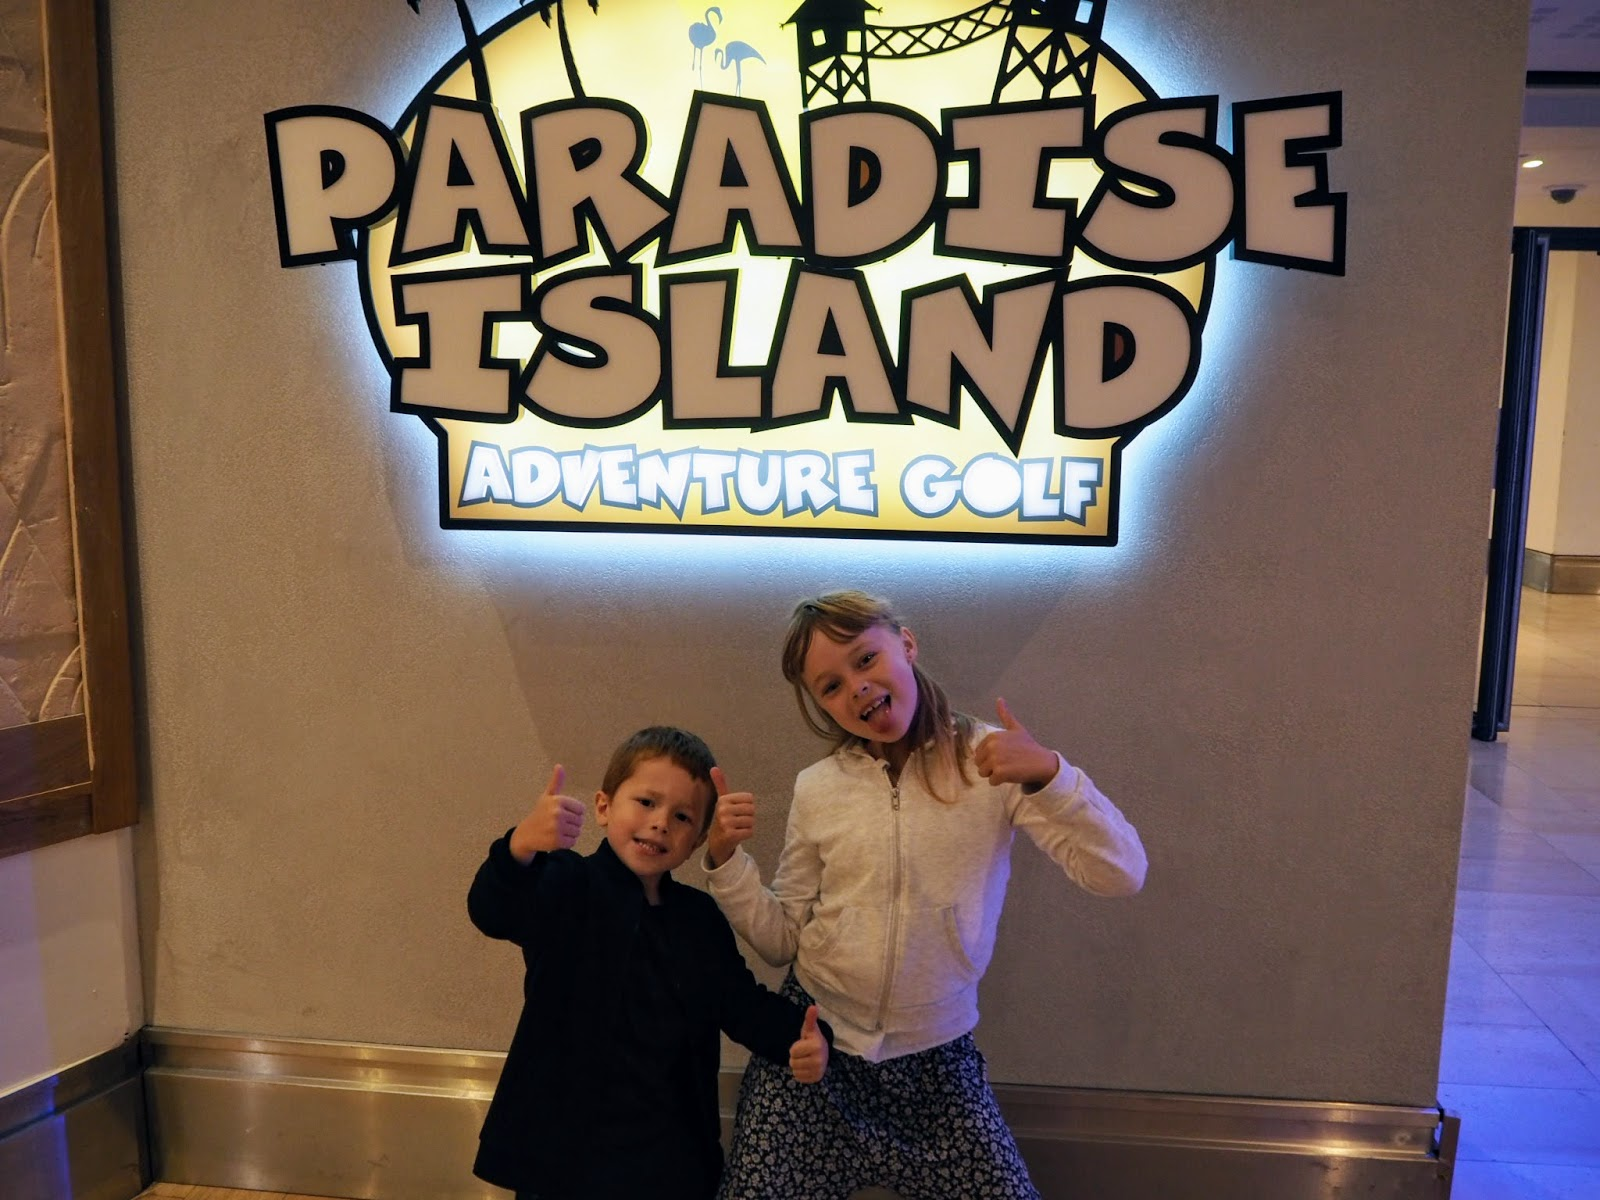 paradise island adventure island golf - Intu Derby